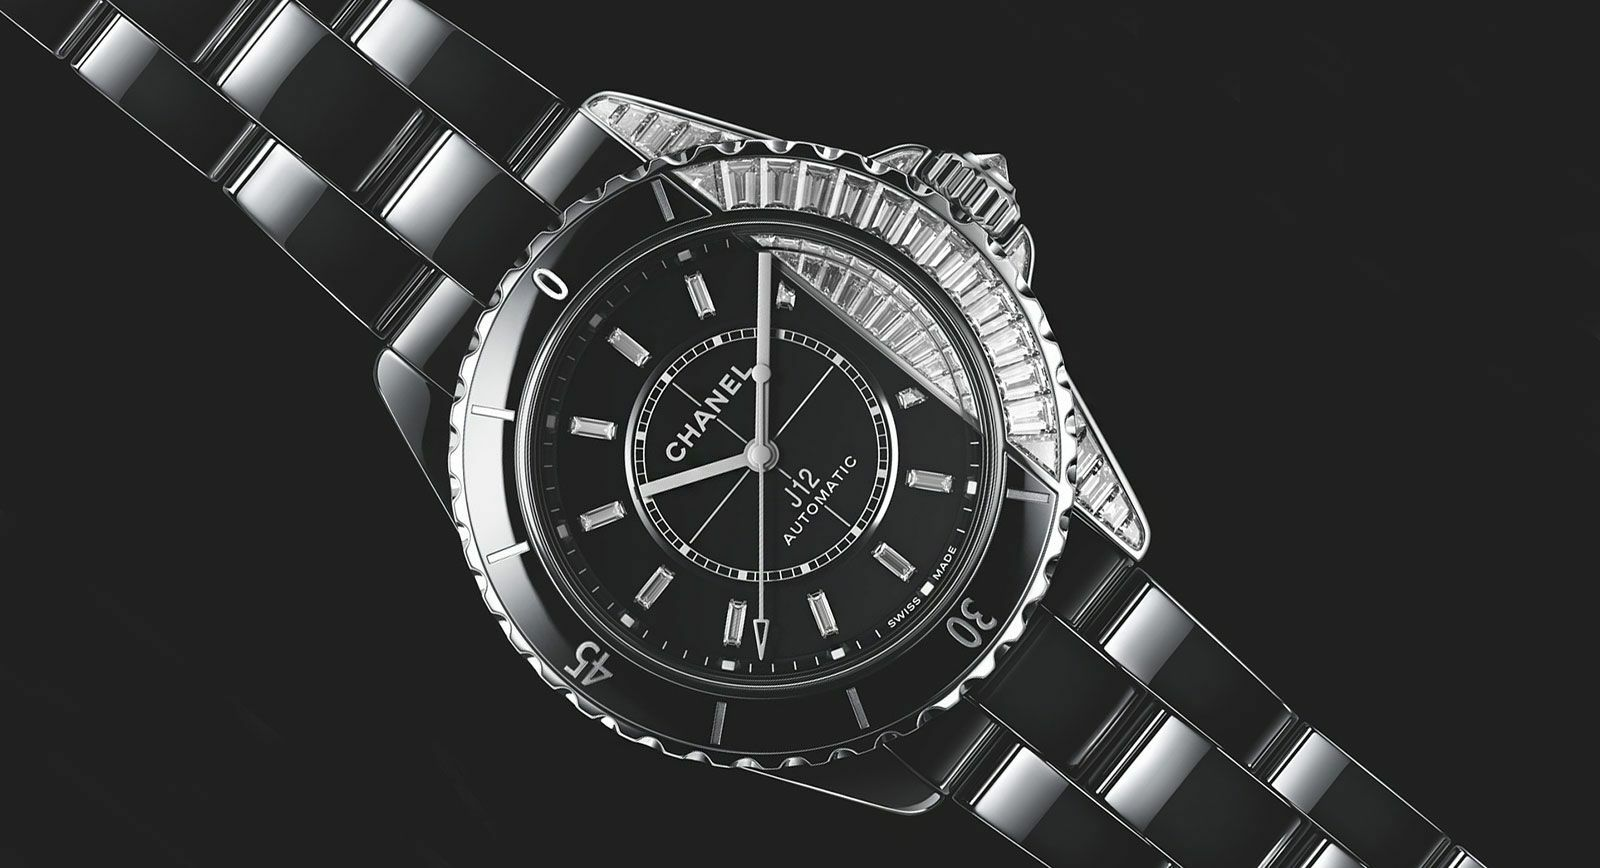 Chanel Watches 'J12 Paradoxe' with diamonds in black ceramic and white gold